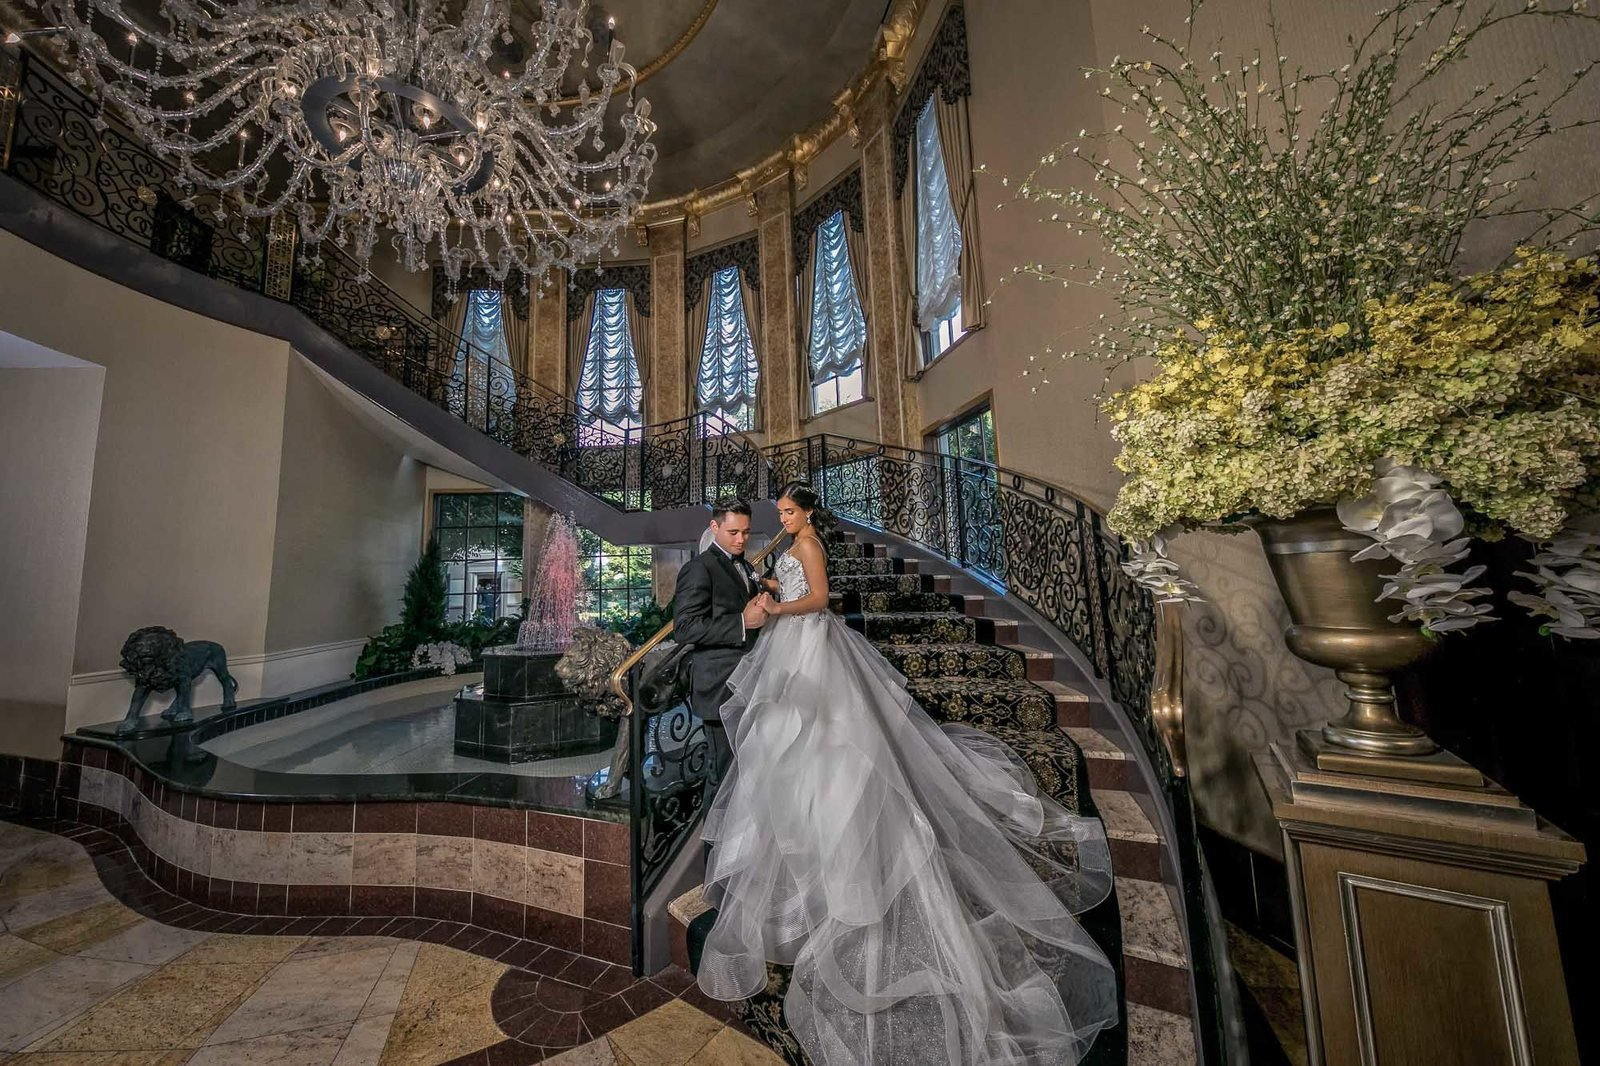 NJ Wedding Photographer Michael Romeo Creations venetian